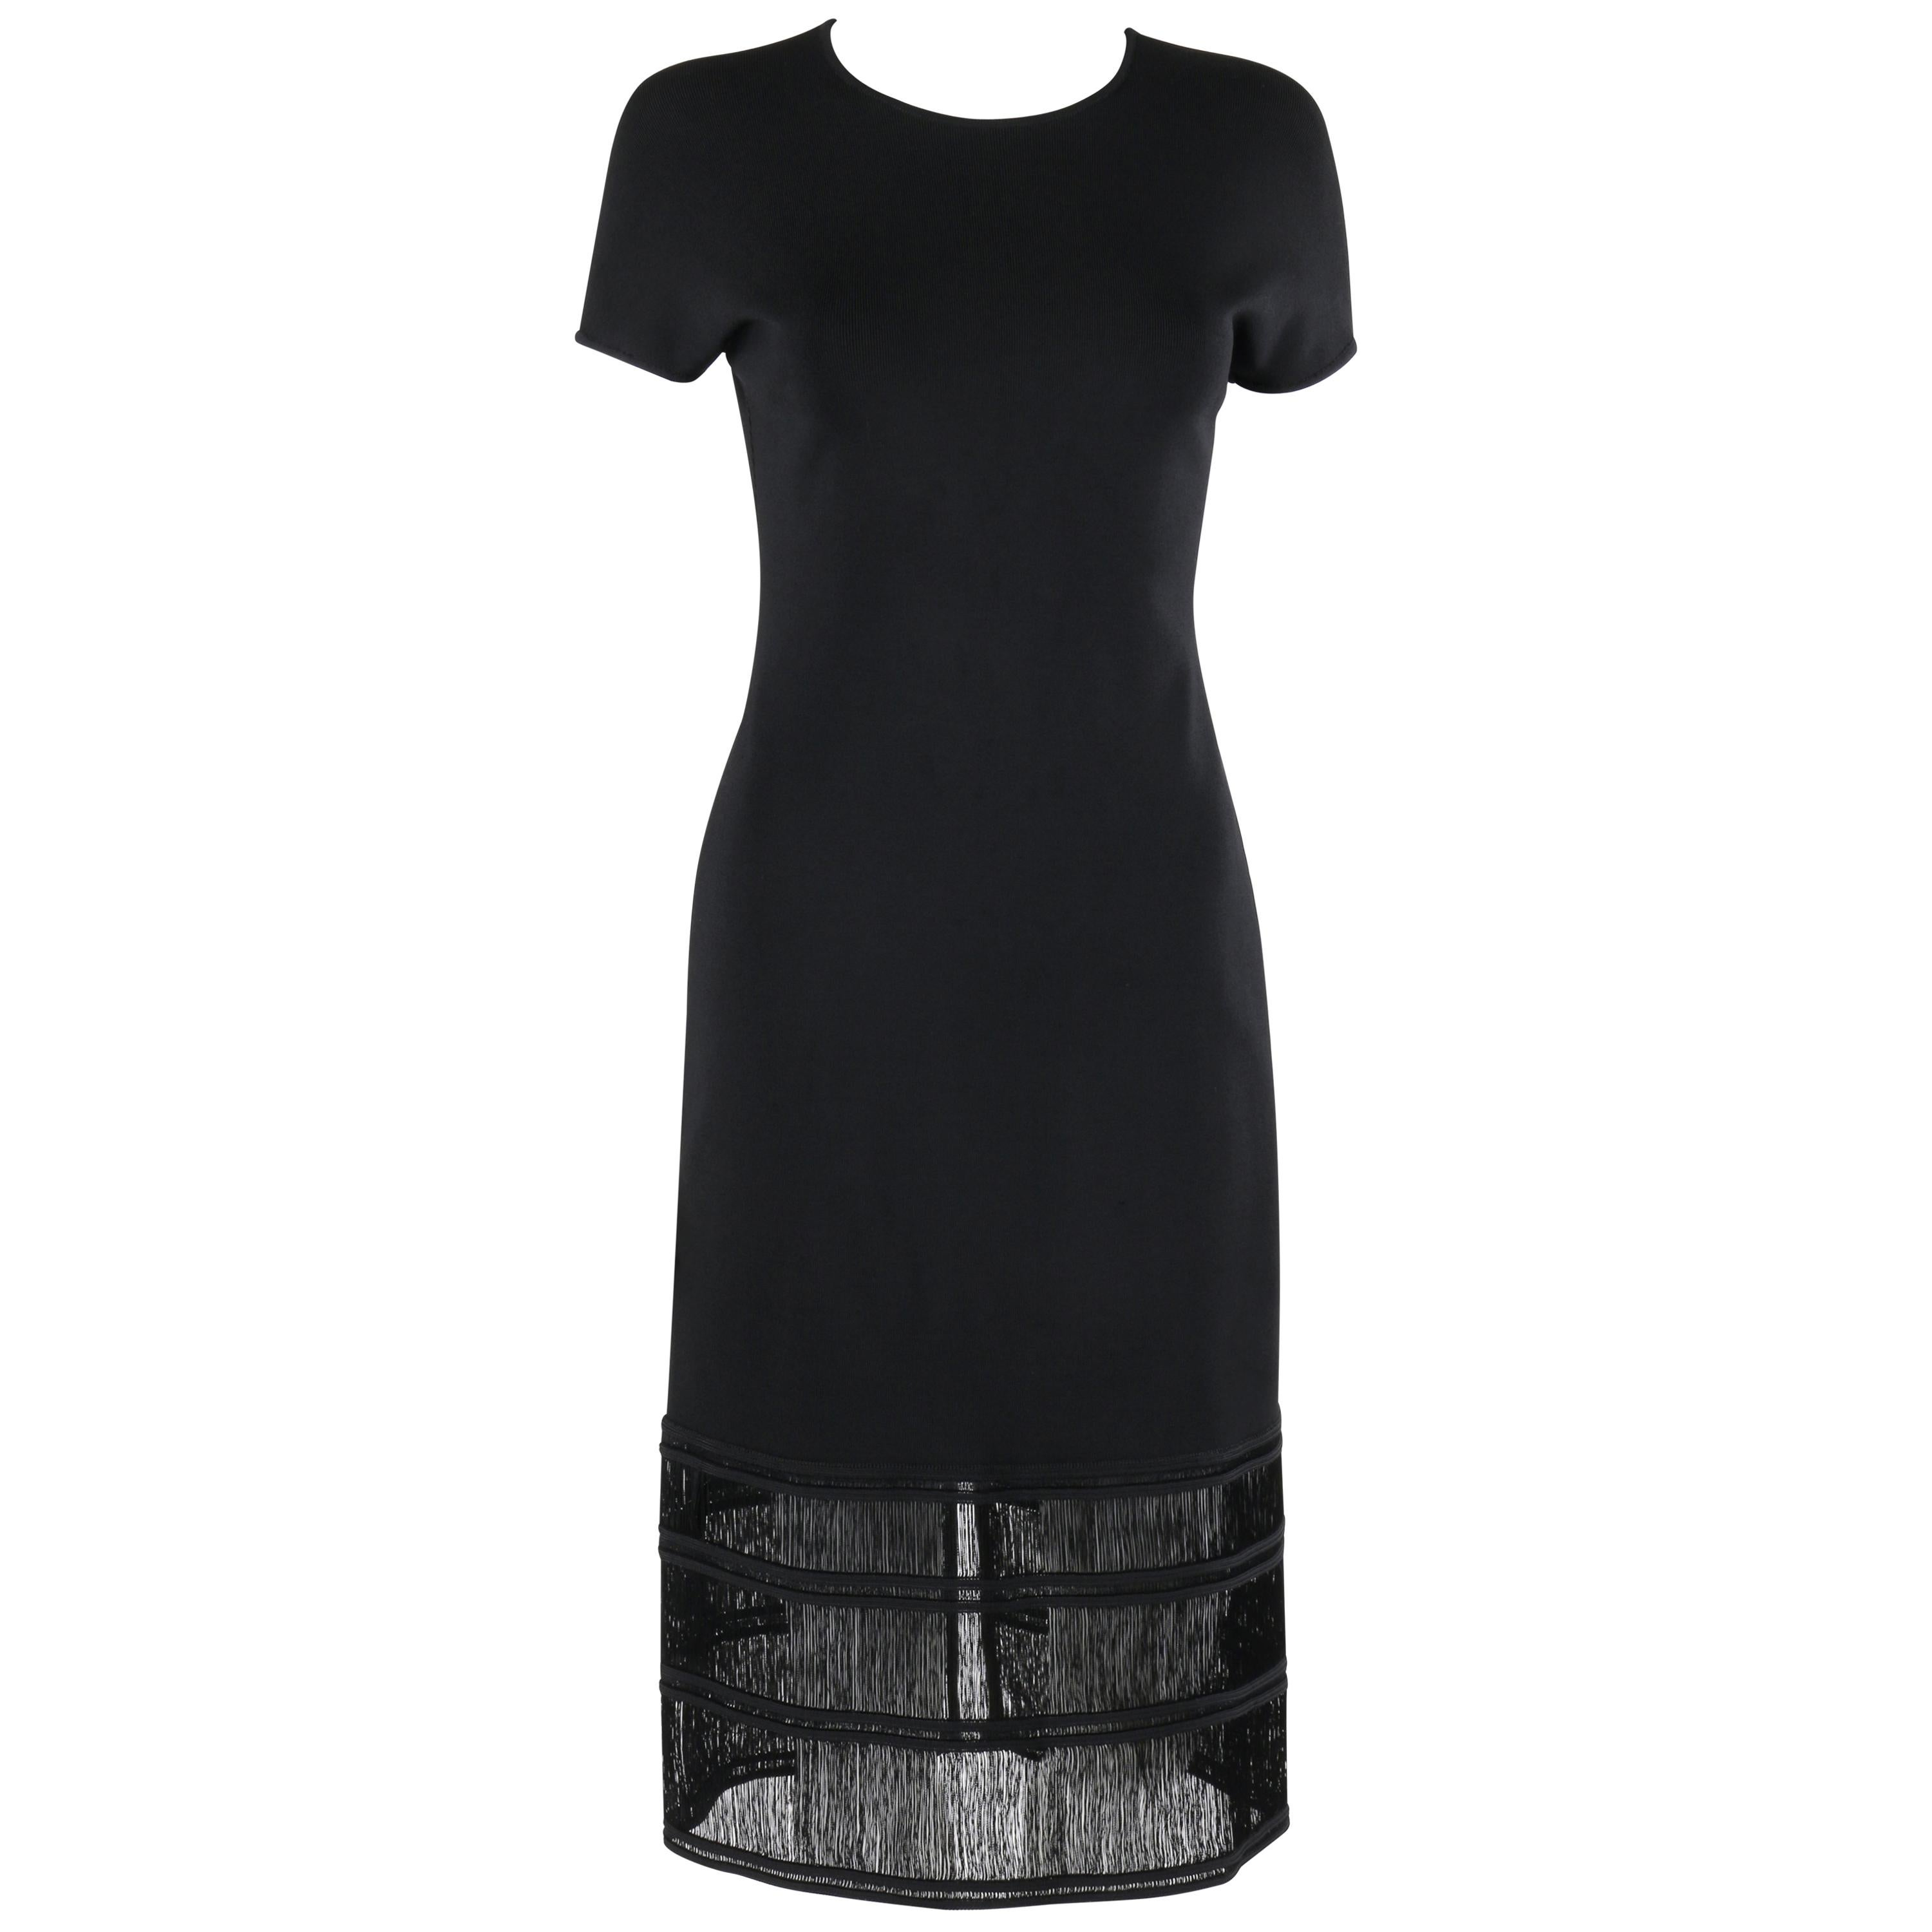 GIVENCHY COUTURE c.1990's ALEXANDER McQUEEN Black Tiered Sheath Fringe Dress